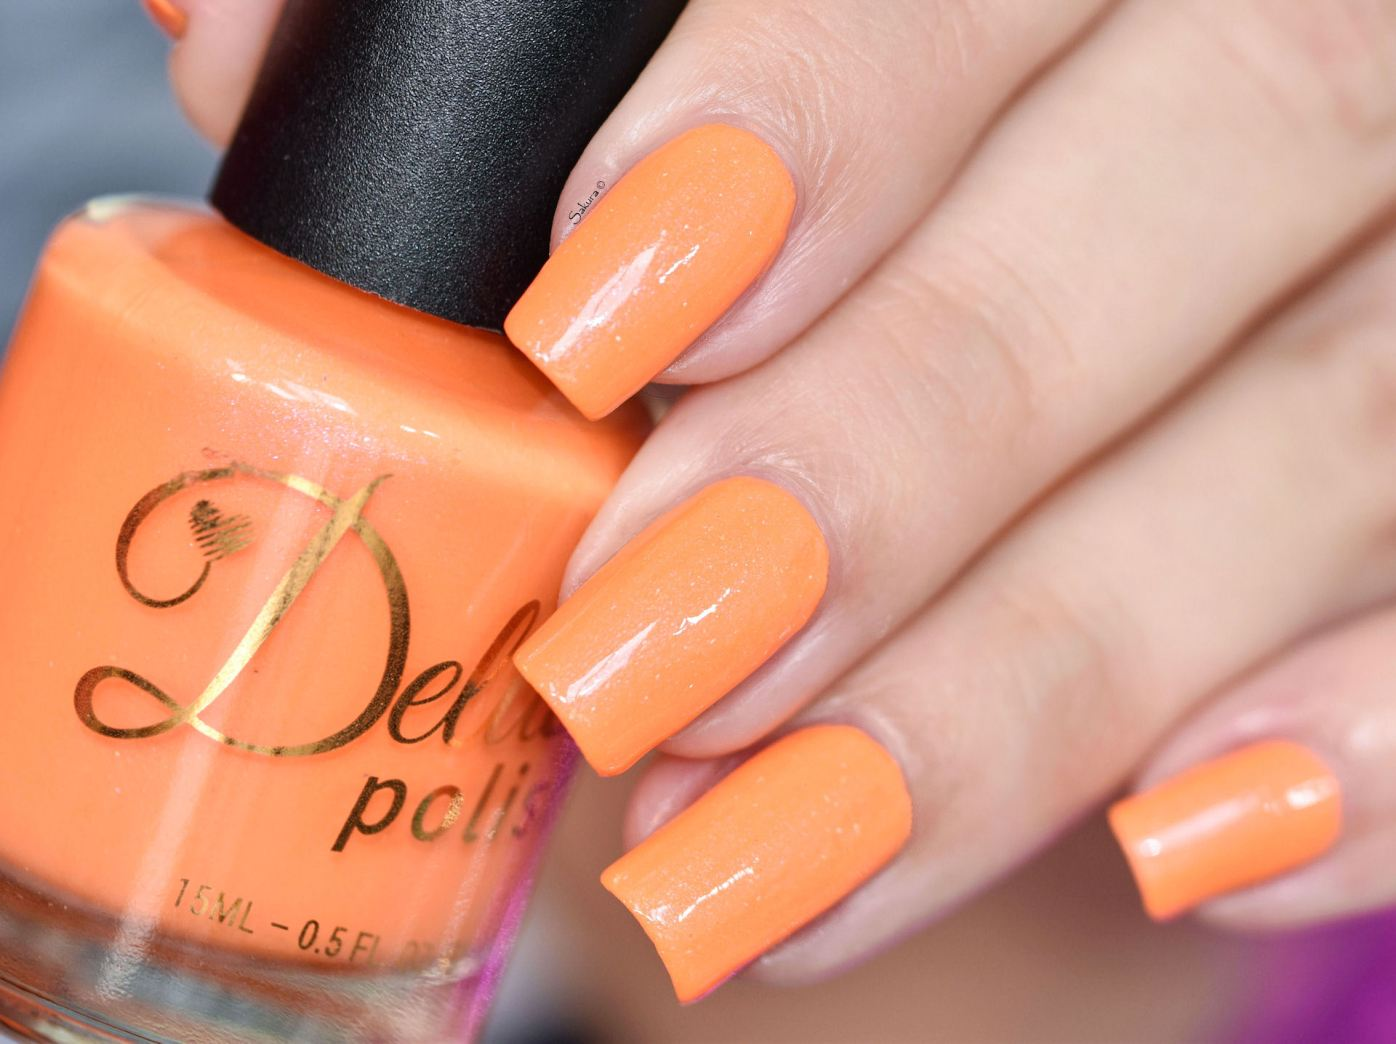 DELUSH POLISH ALL SUN & GAMES 2